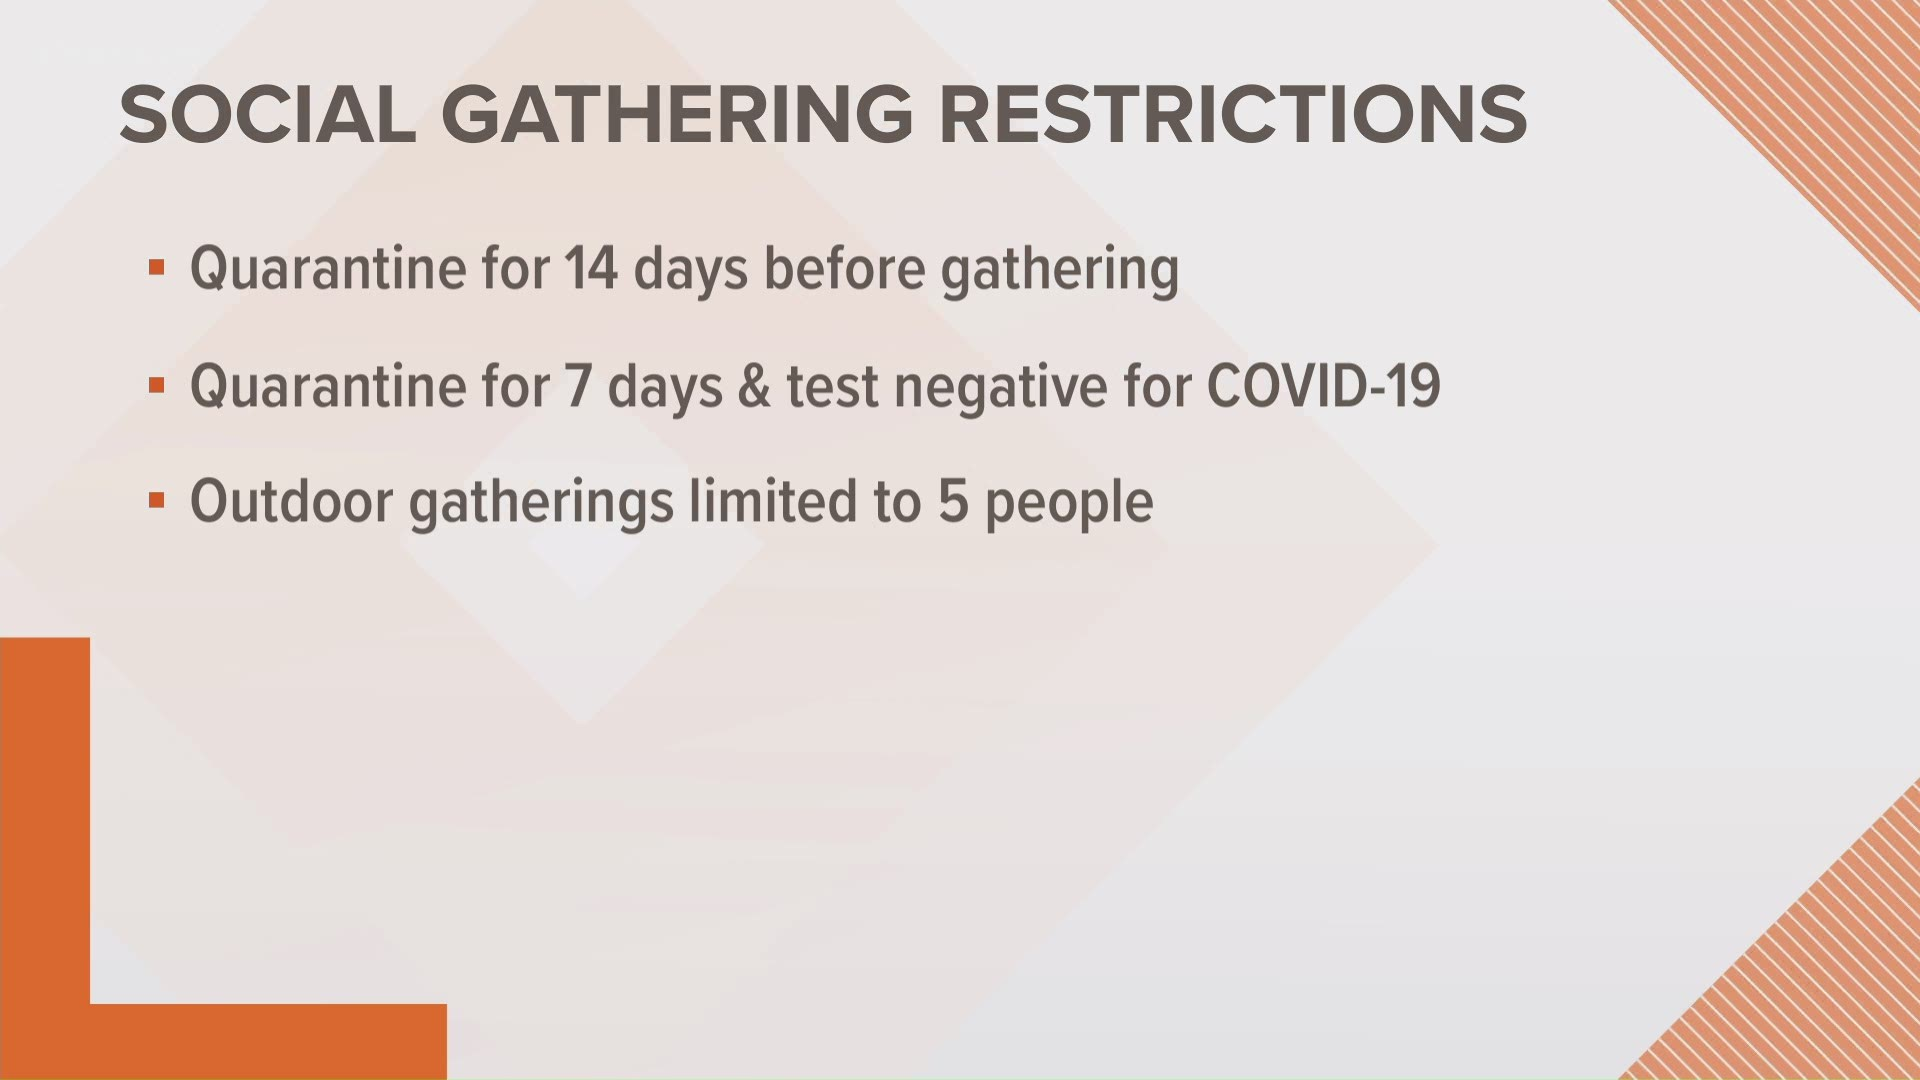 New Covid 19 Restrictions In Effect For Washington Stores Restaurants And Social Gatherings Whas11 Com